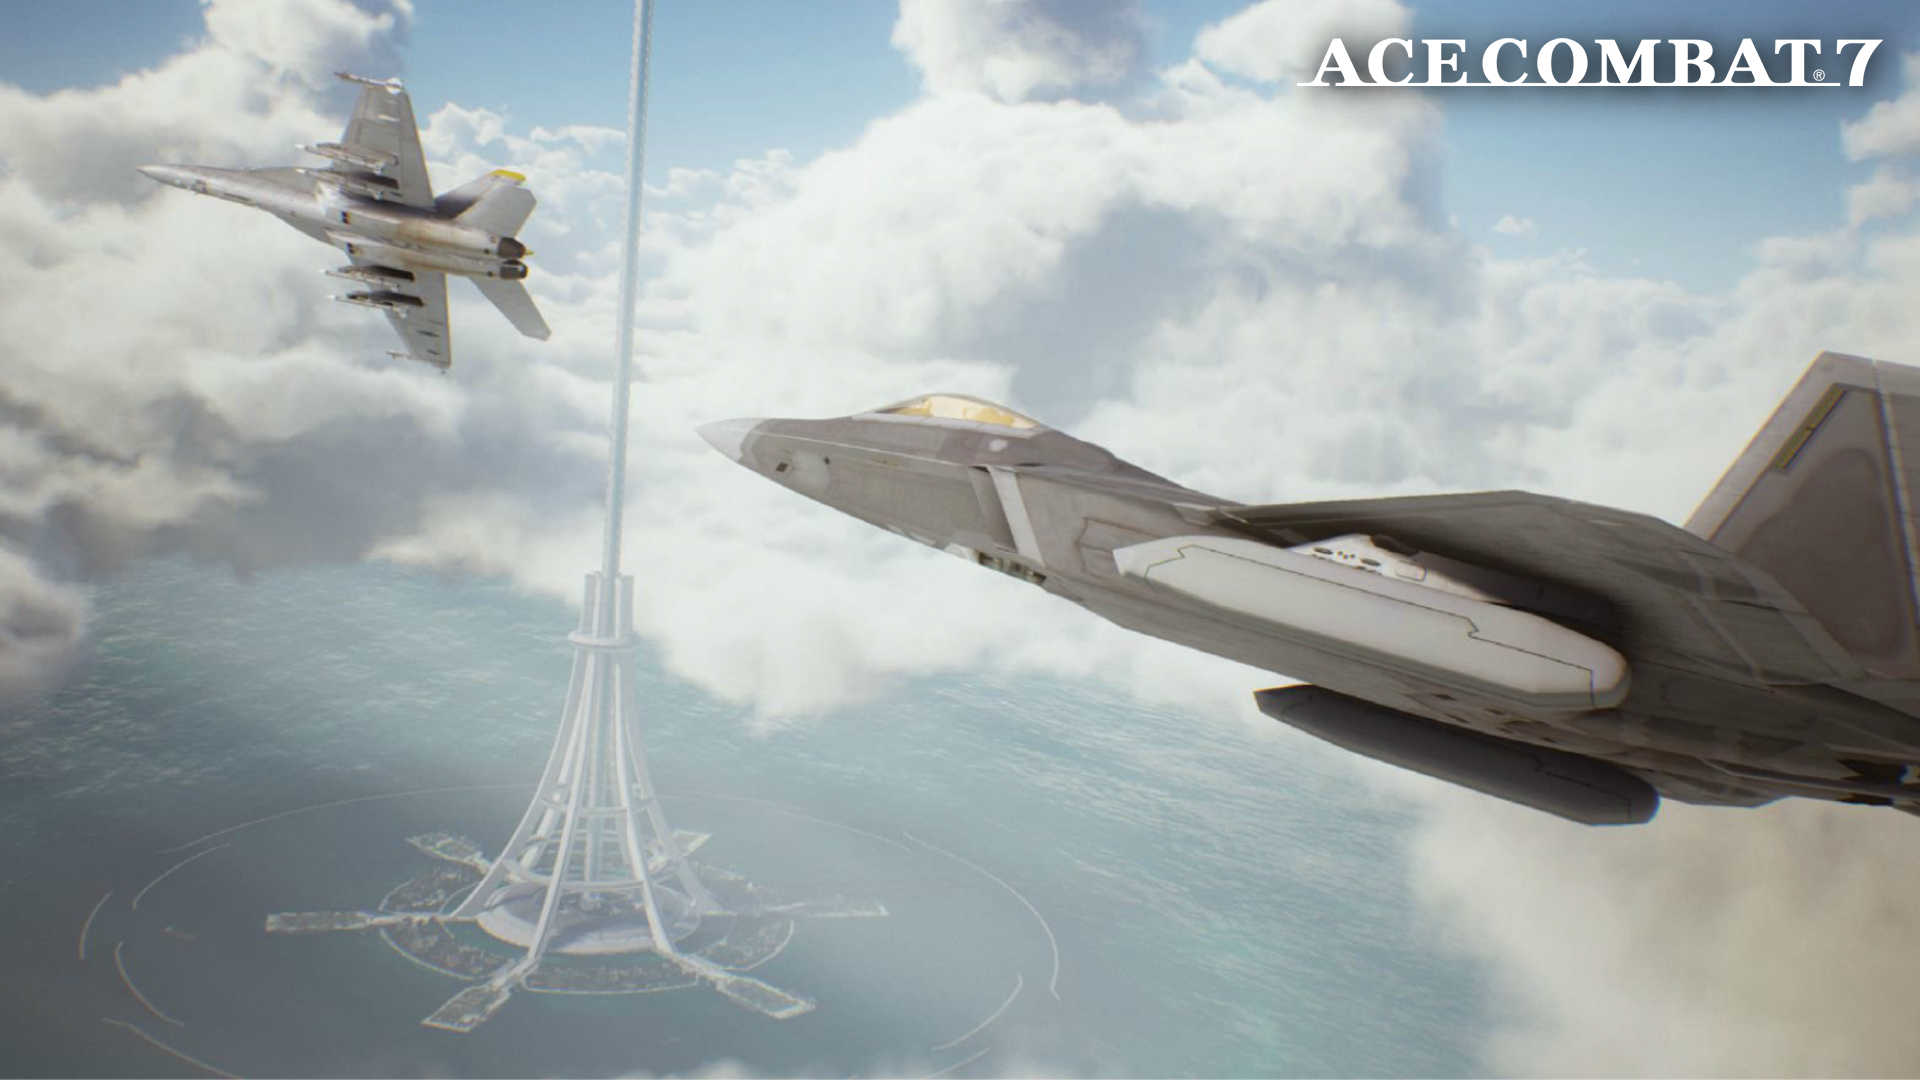 ace-combat-7-trailer-ita-playstation-experience-gamesoul